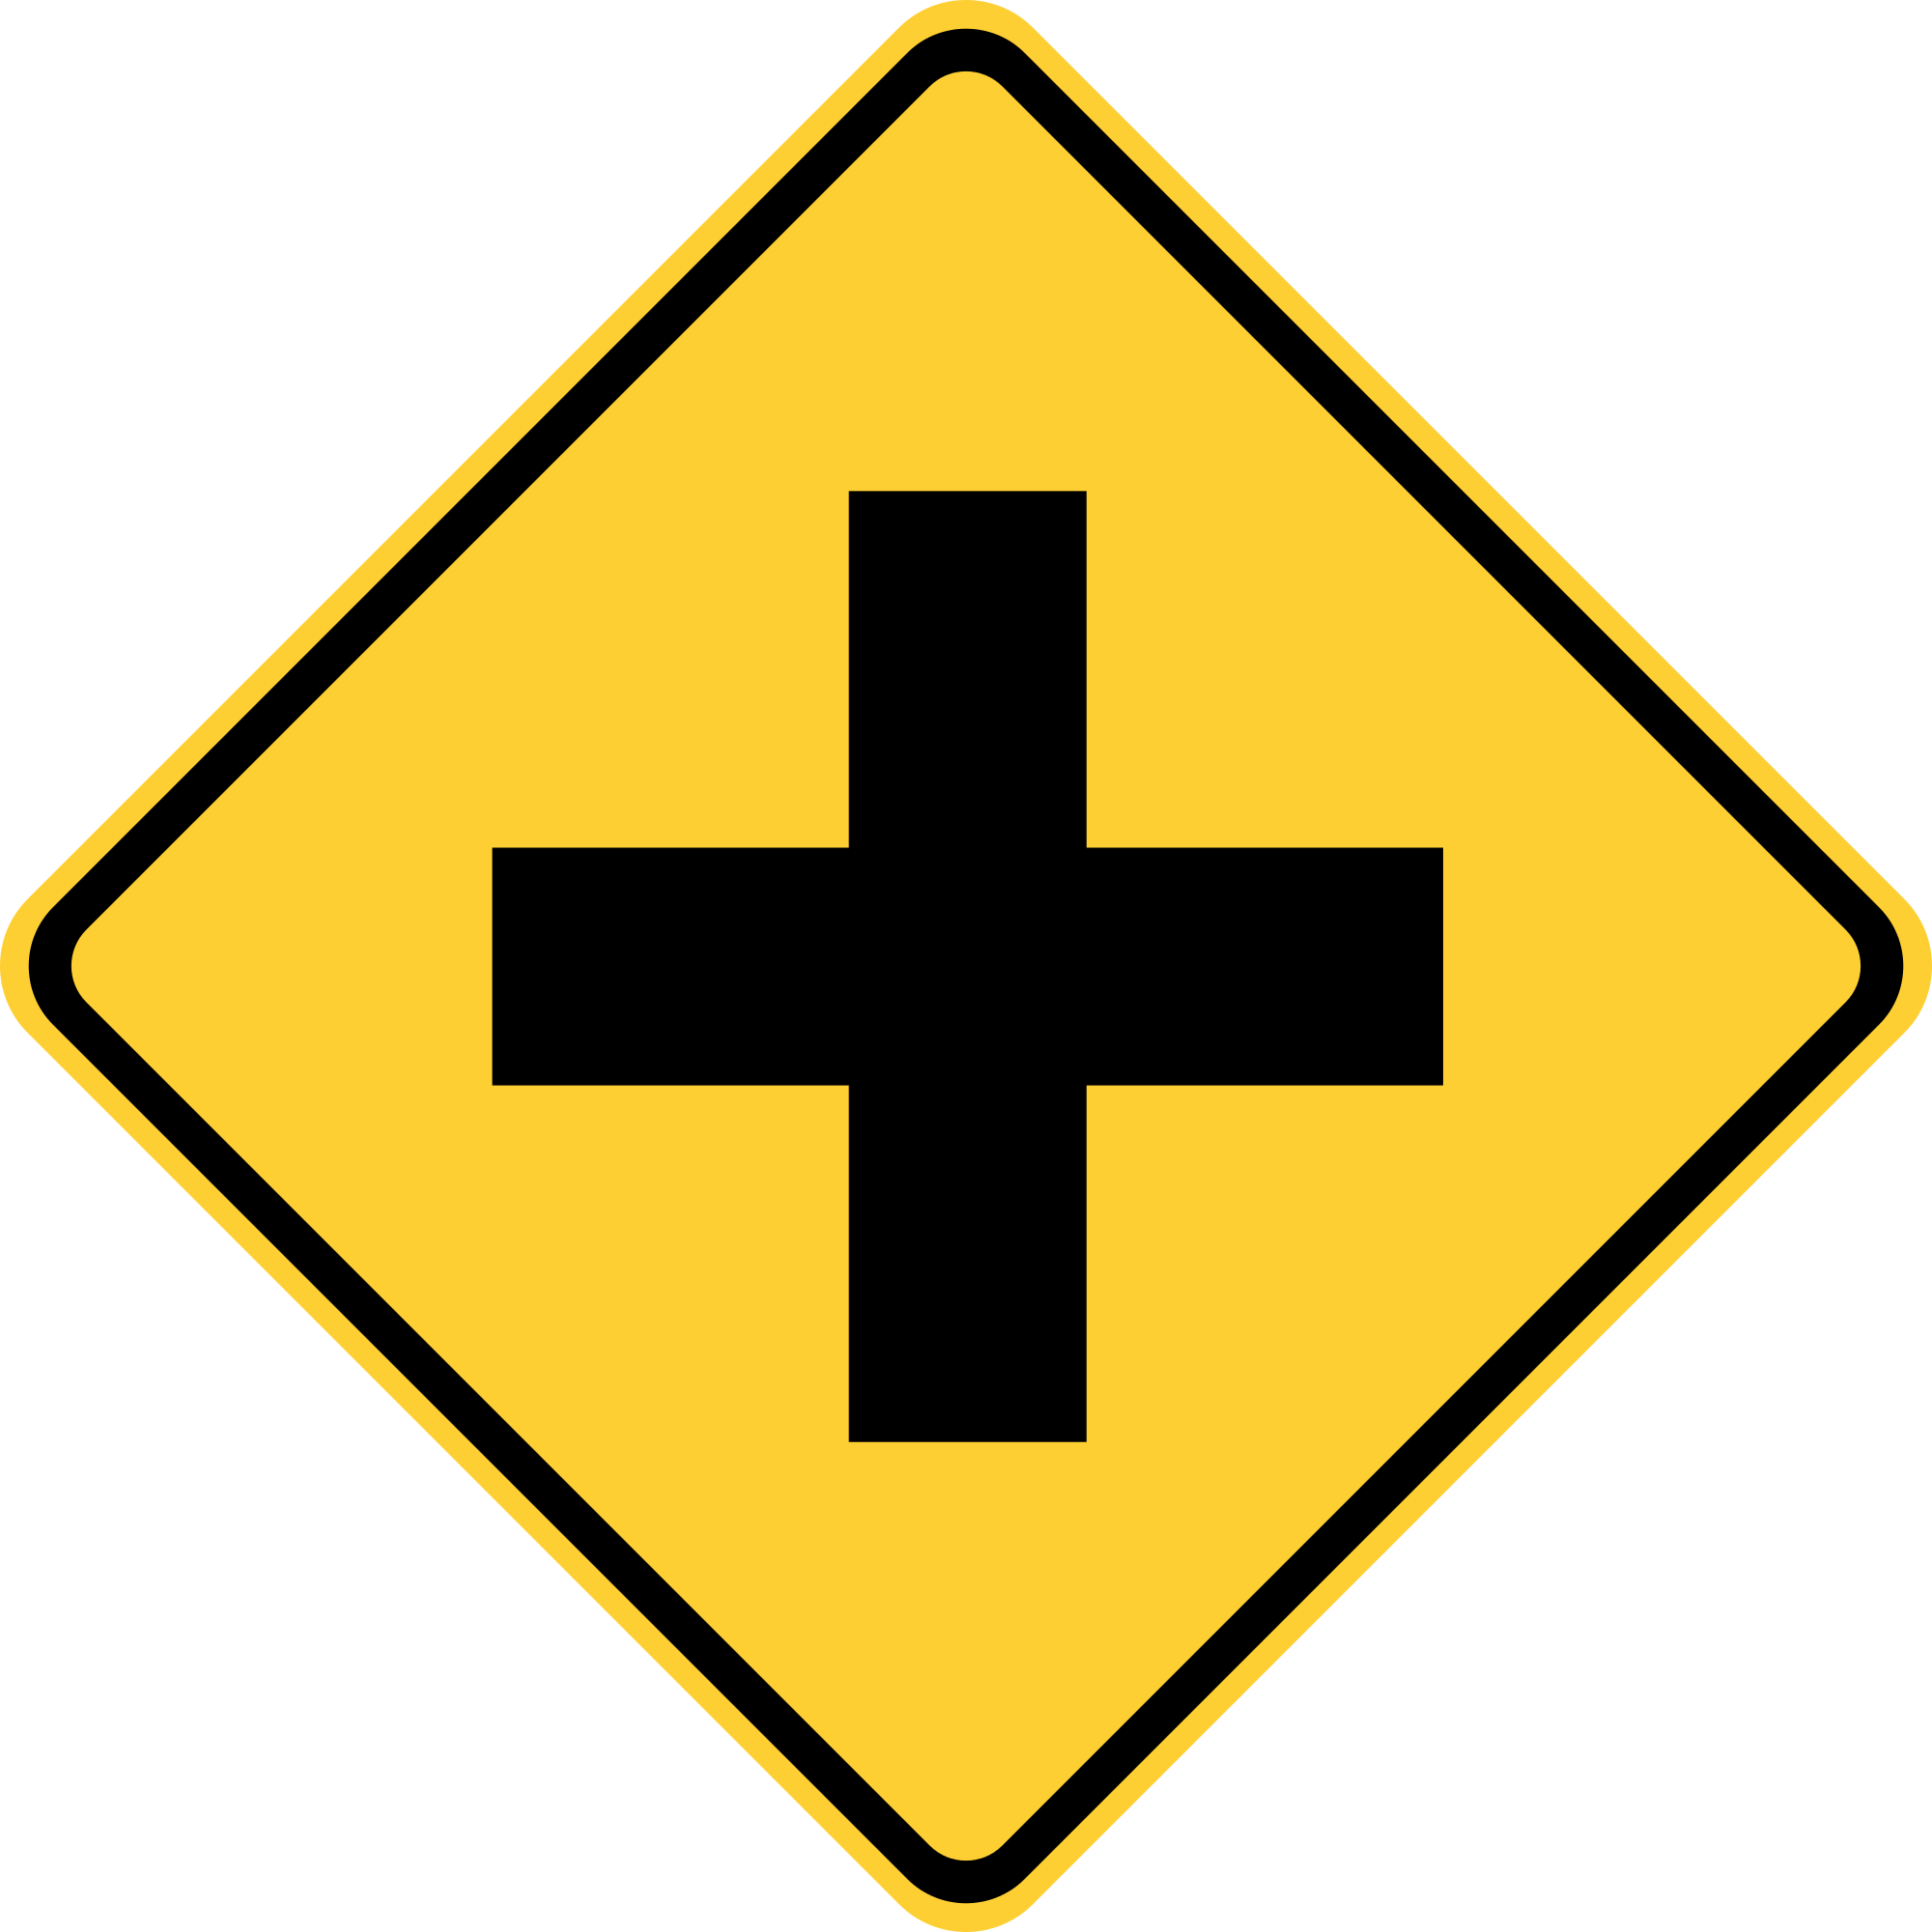 W2-1 Cross Road Warning Sign